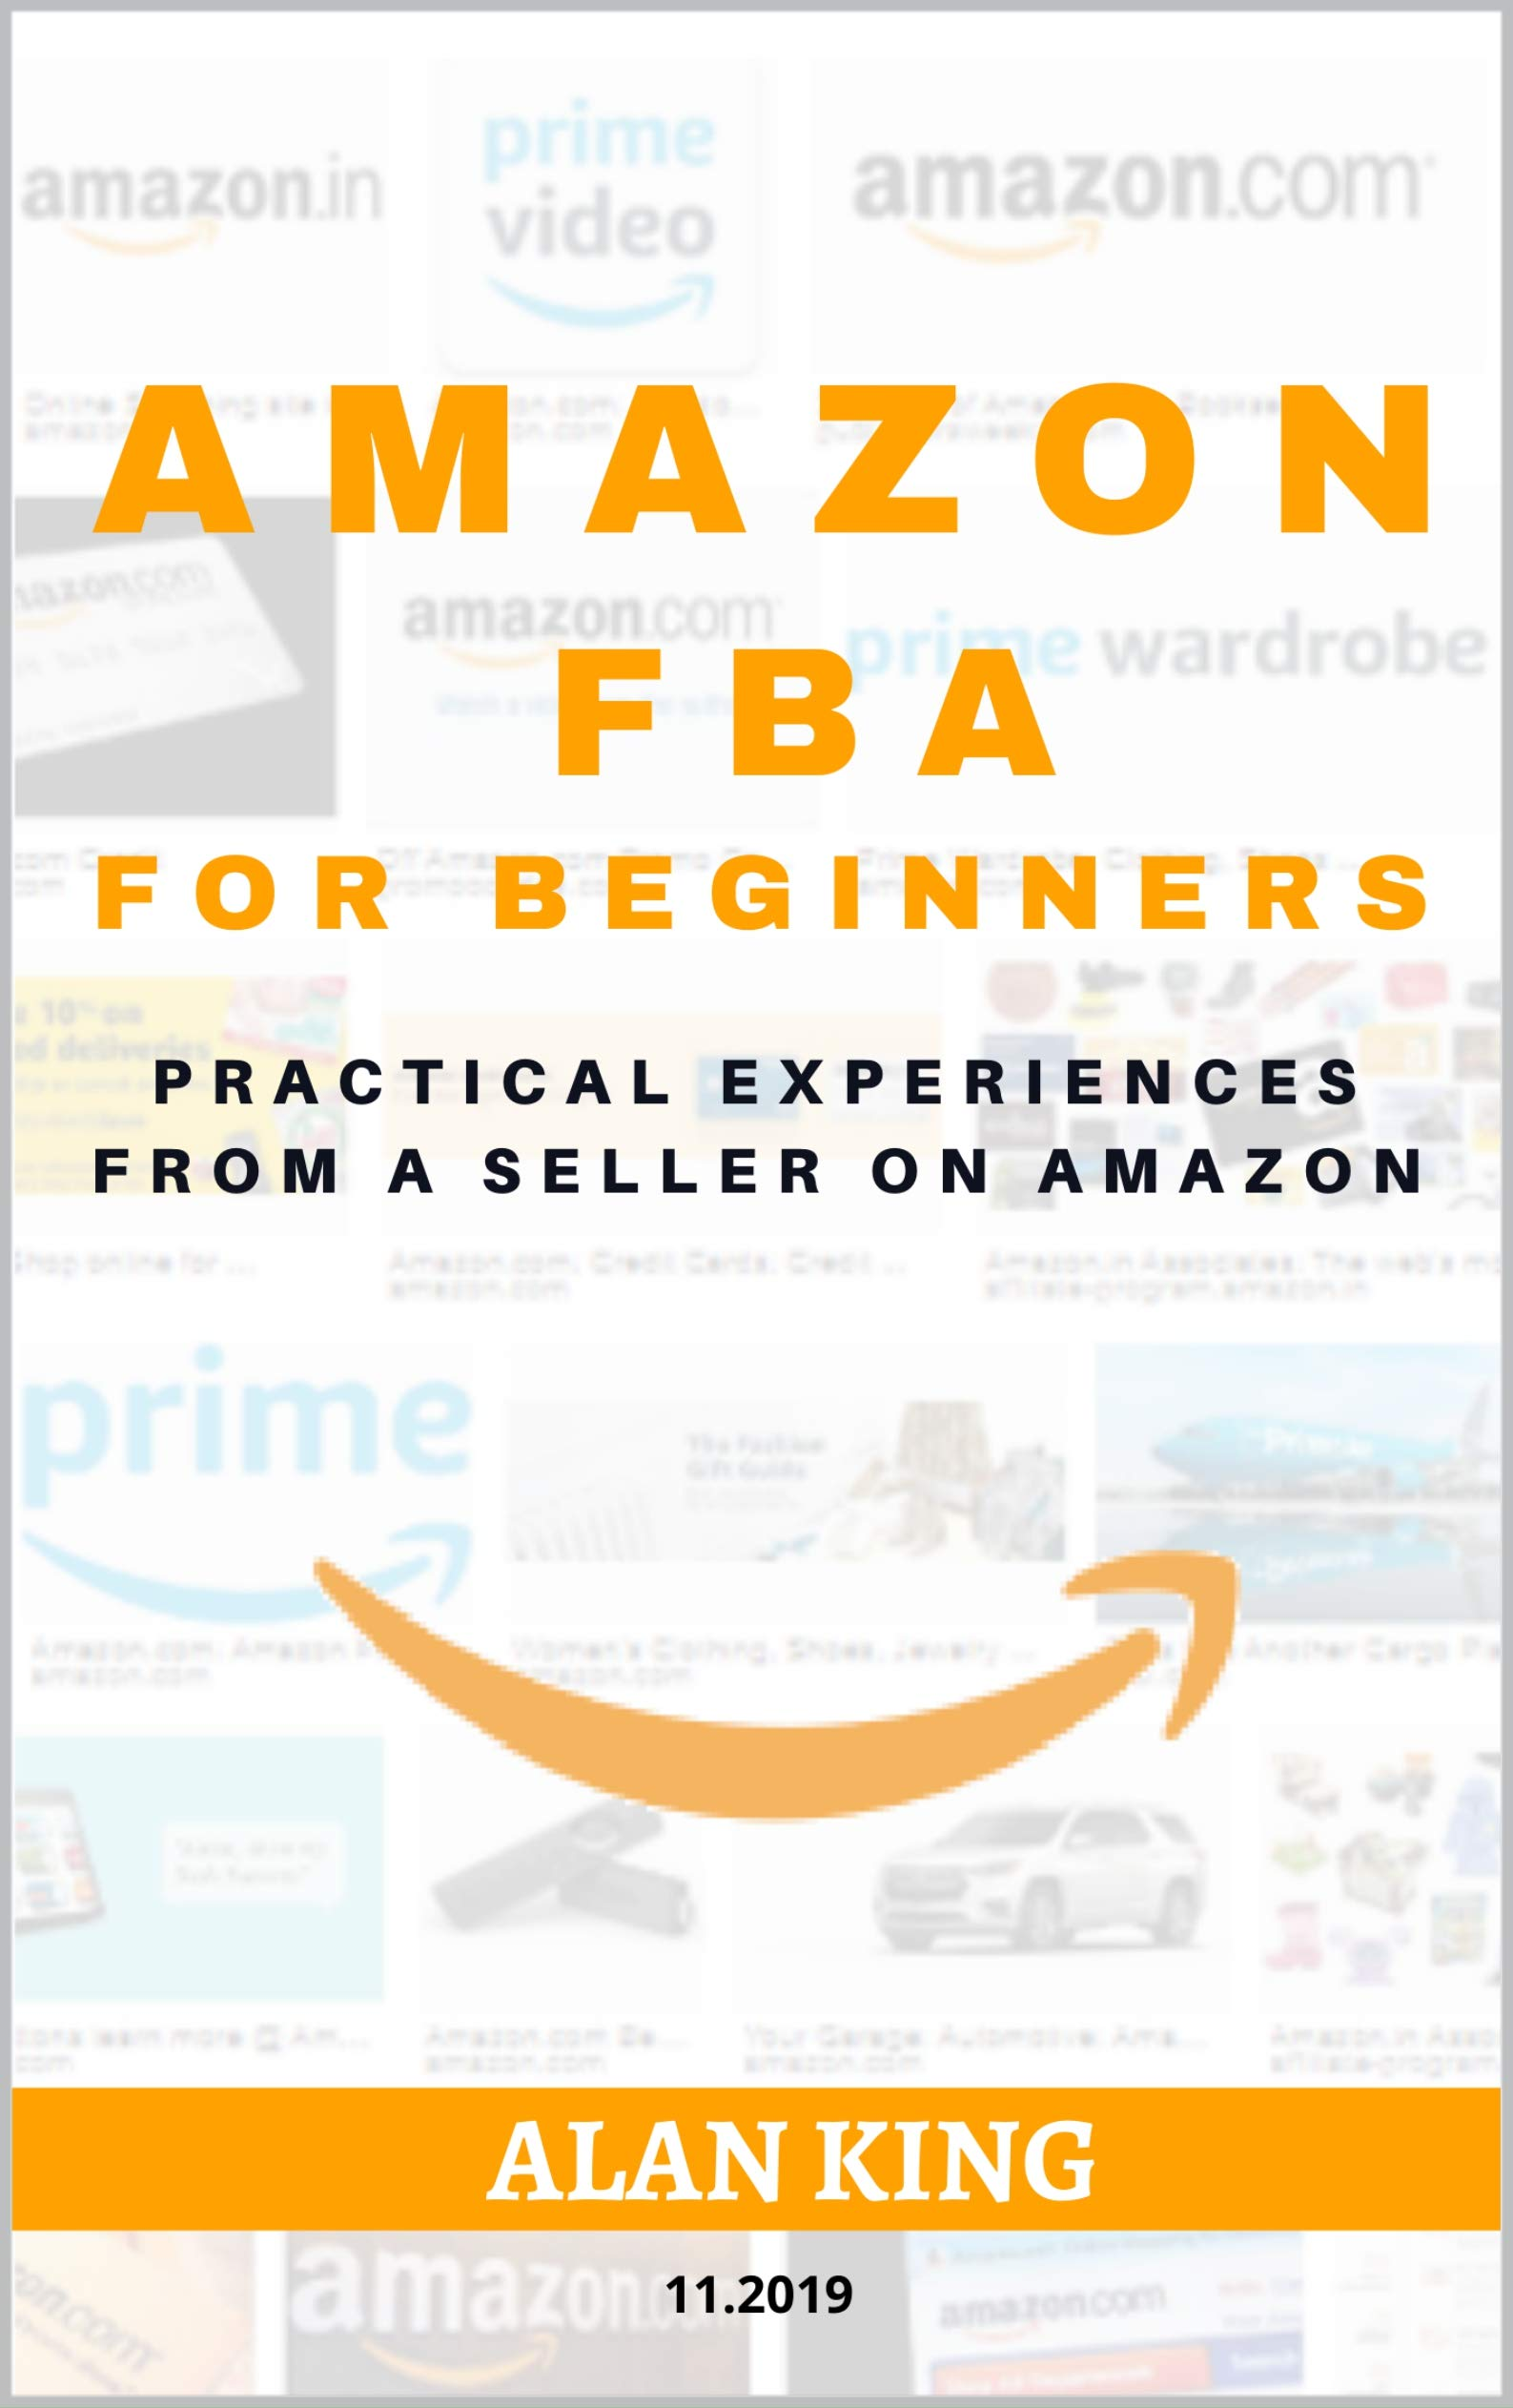 AMAZON FBA FOR BEGINNERS: Practical Experiences From A Seller On Amazon